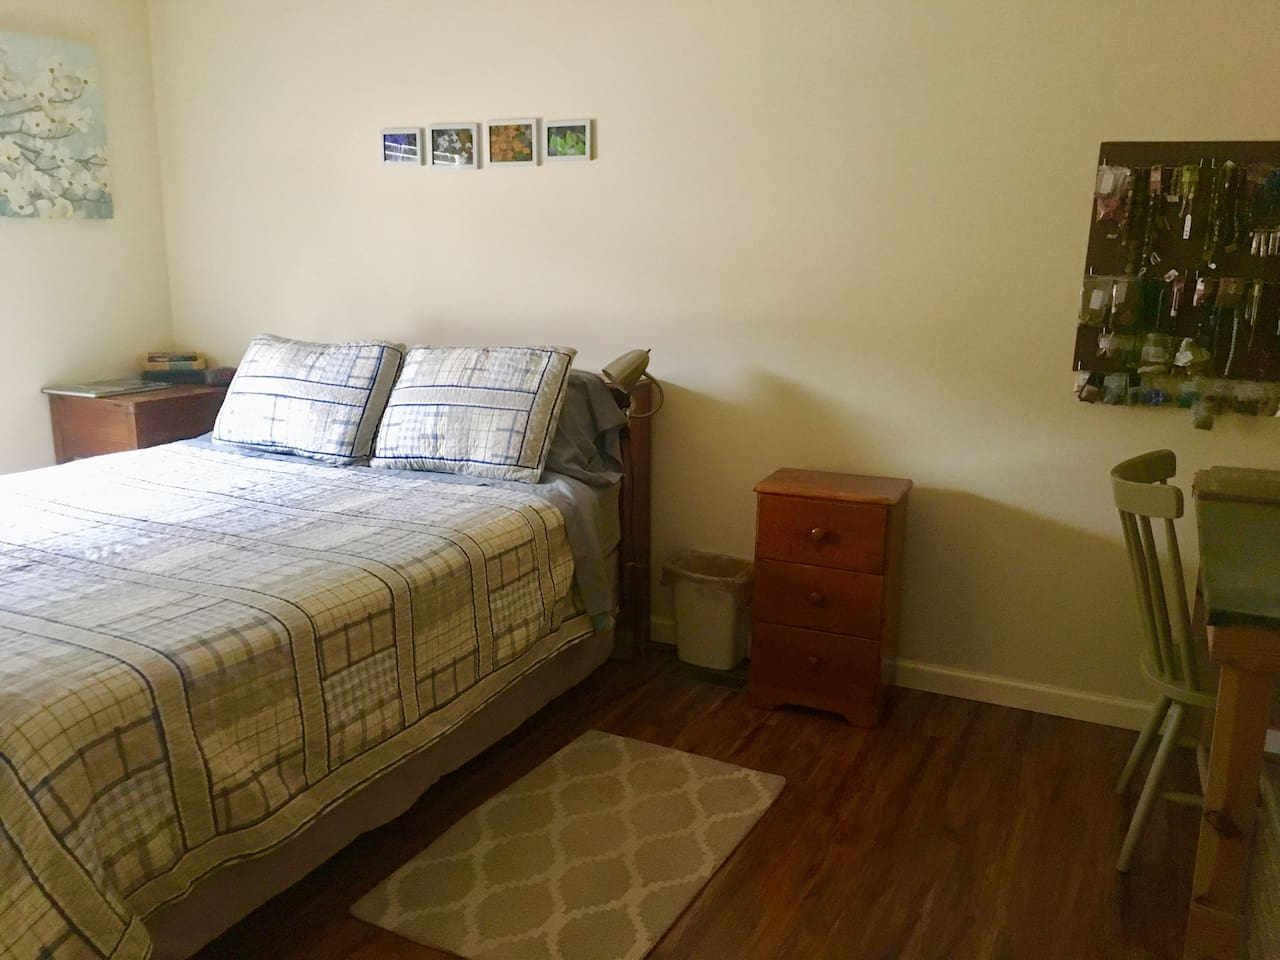 Your Private Room - Queen sized bed. There is space for an air mattress but there is an additional fee of $10 per person per night over 2 people. Max of 4 people.